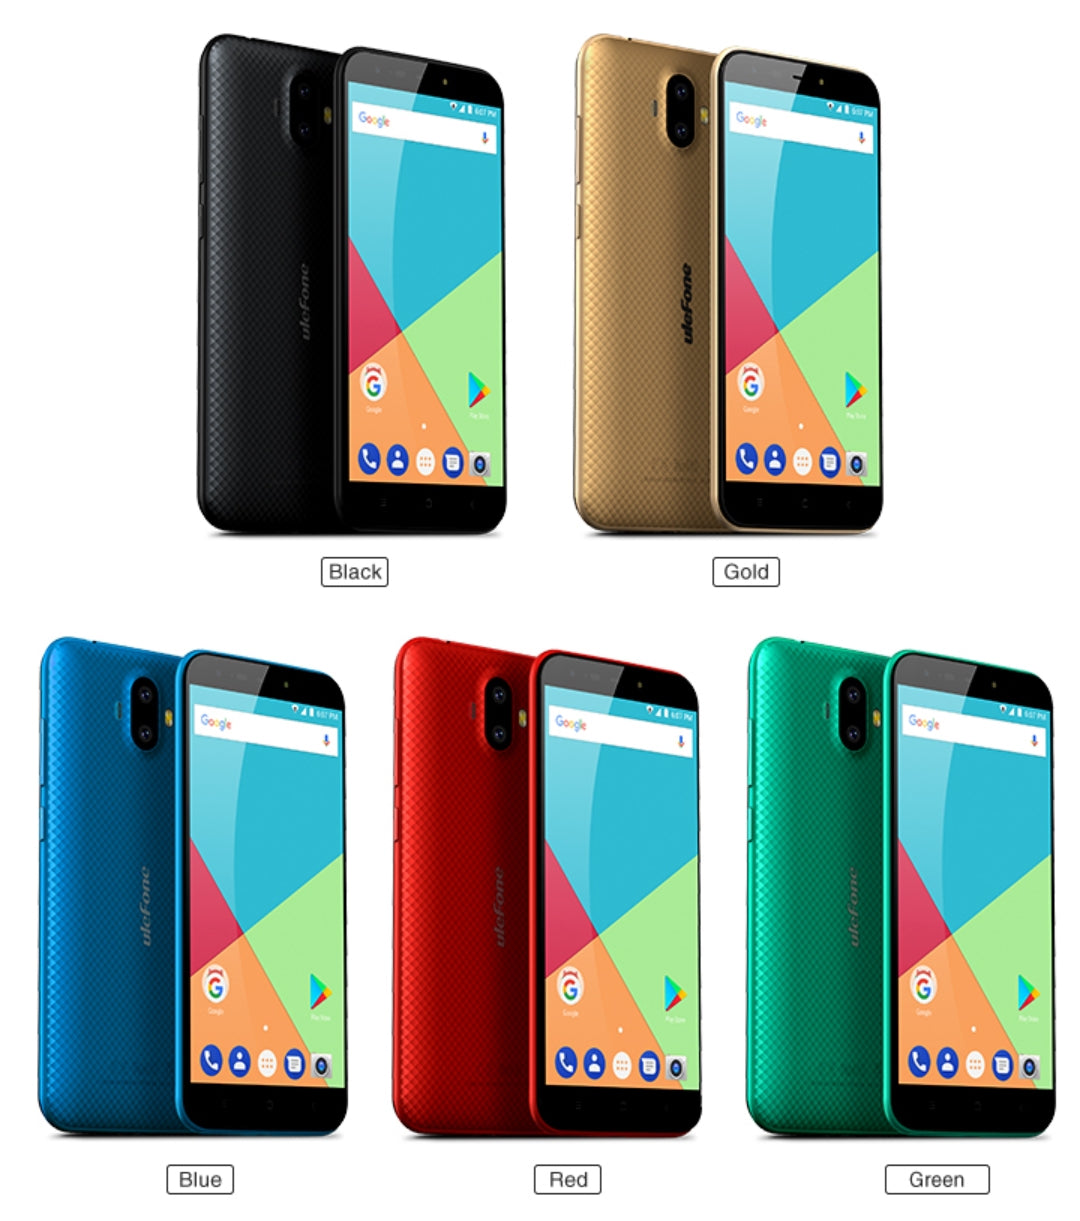 SmartGuds.com-Ulefone S7 Description